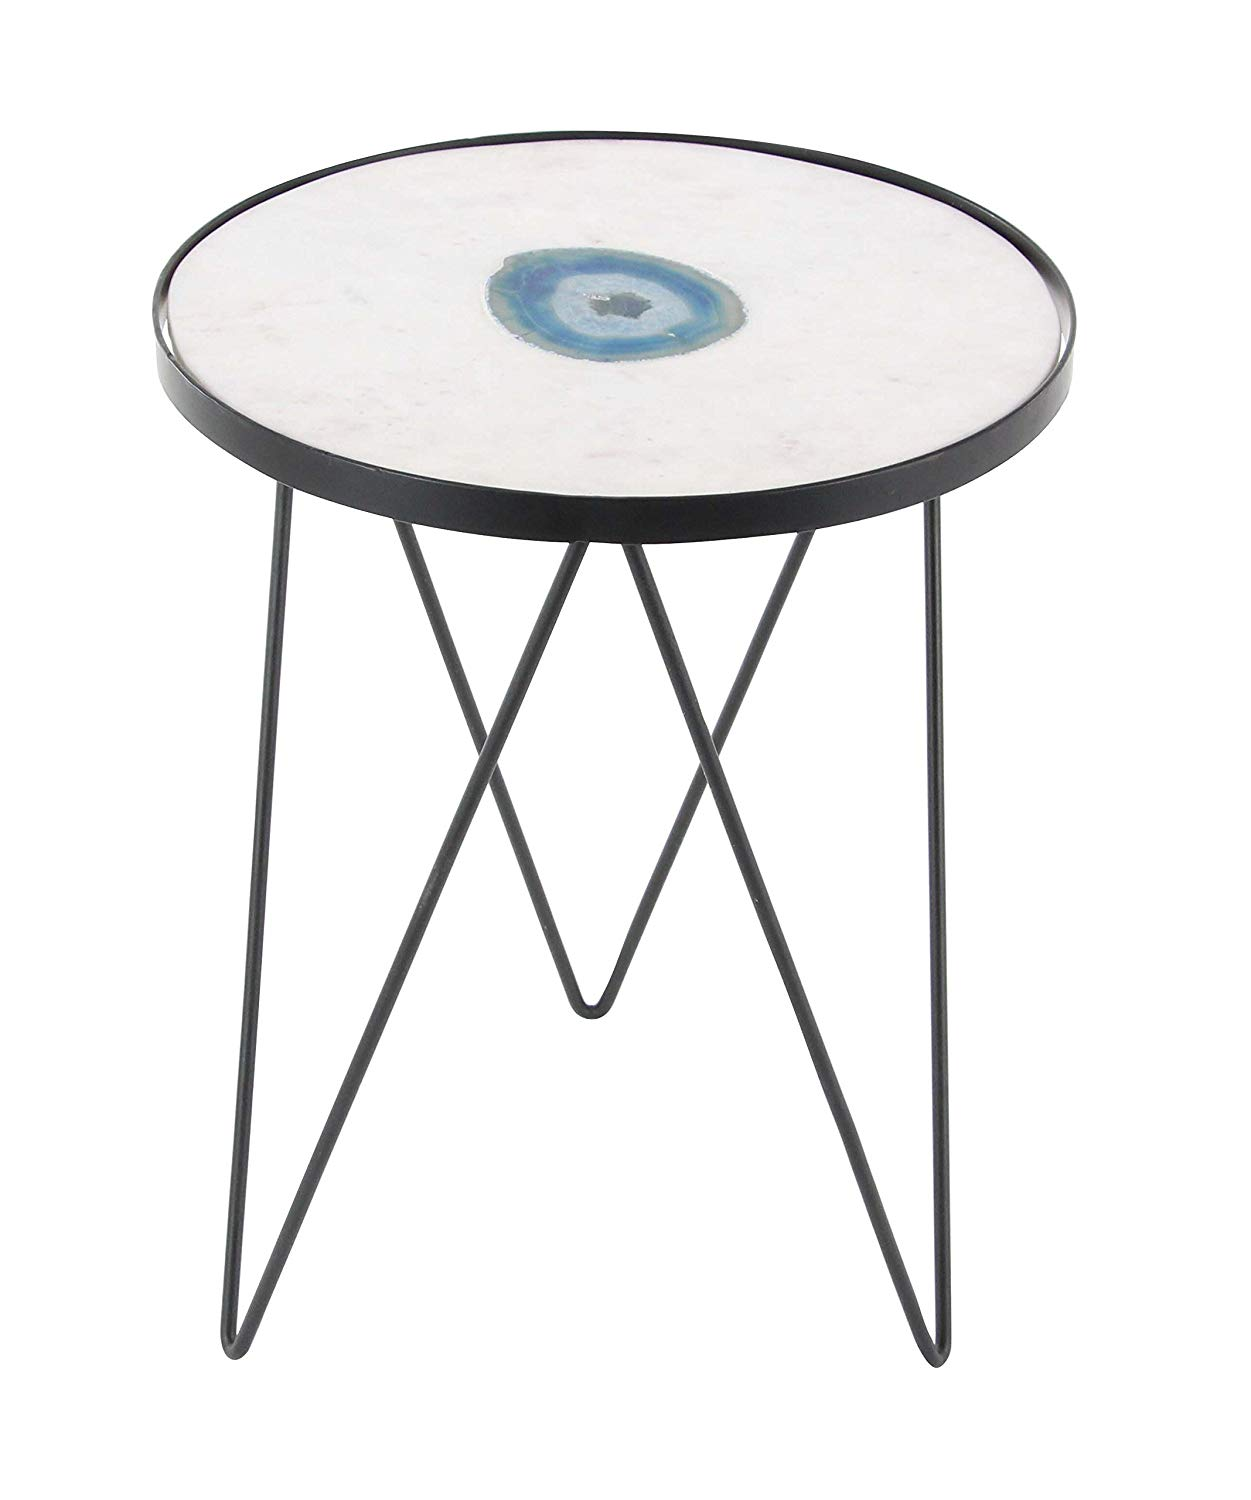 charming white marble and metal round accent table small for faux tablecloth pedestal wooden unfinished wood ideas covers decorating threshold side cloth full size bedside with